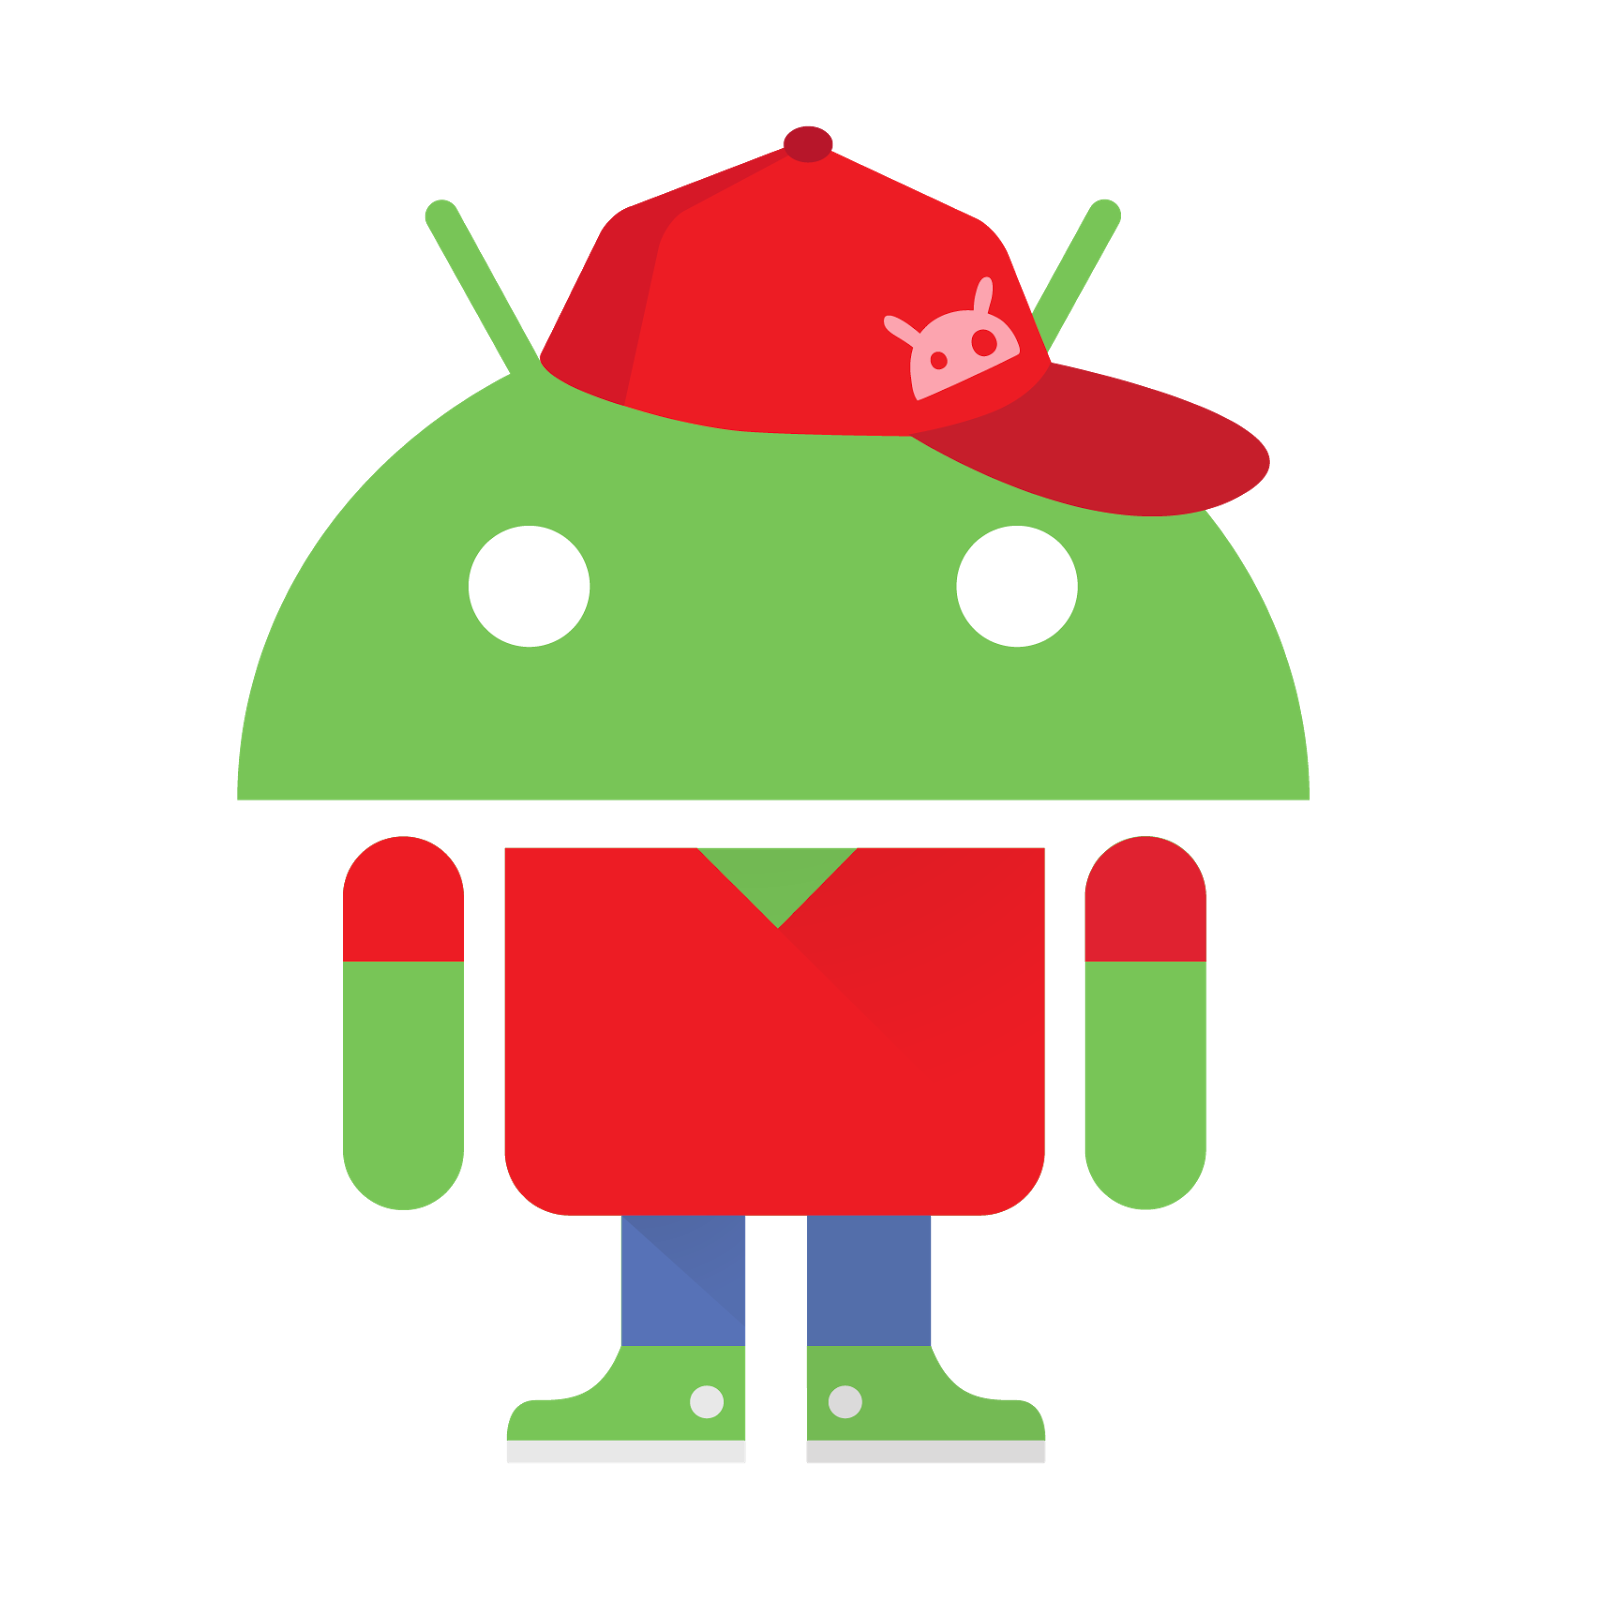 Androidify - Android - App - APK File Download | Androidify - apk - download